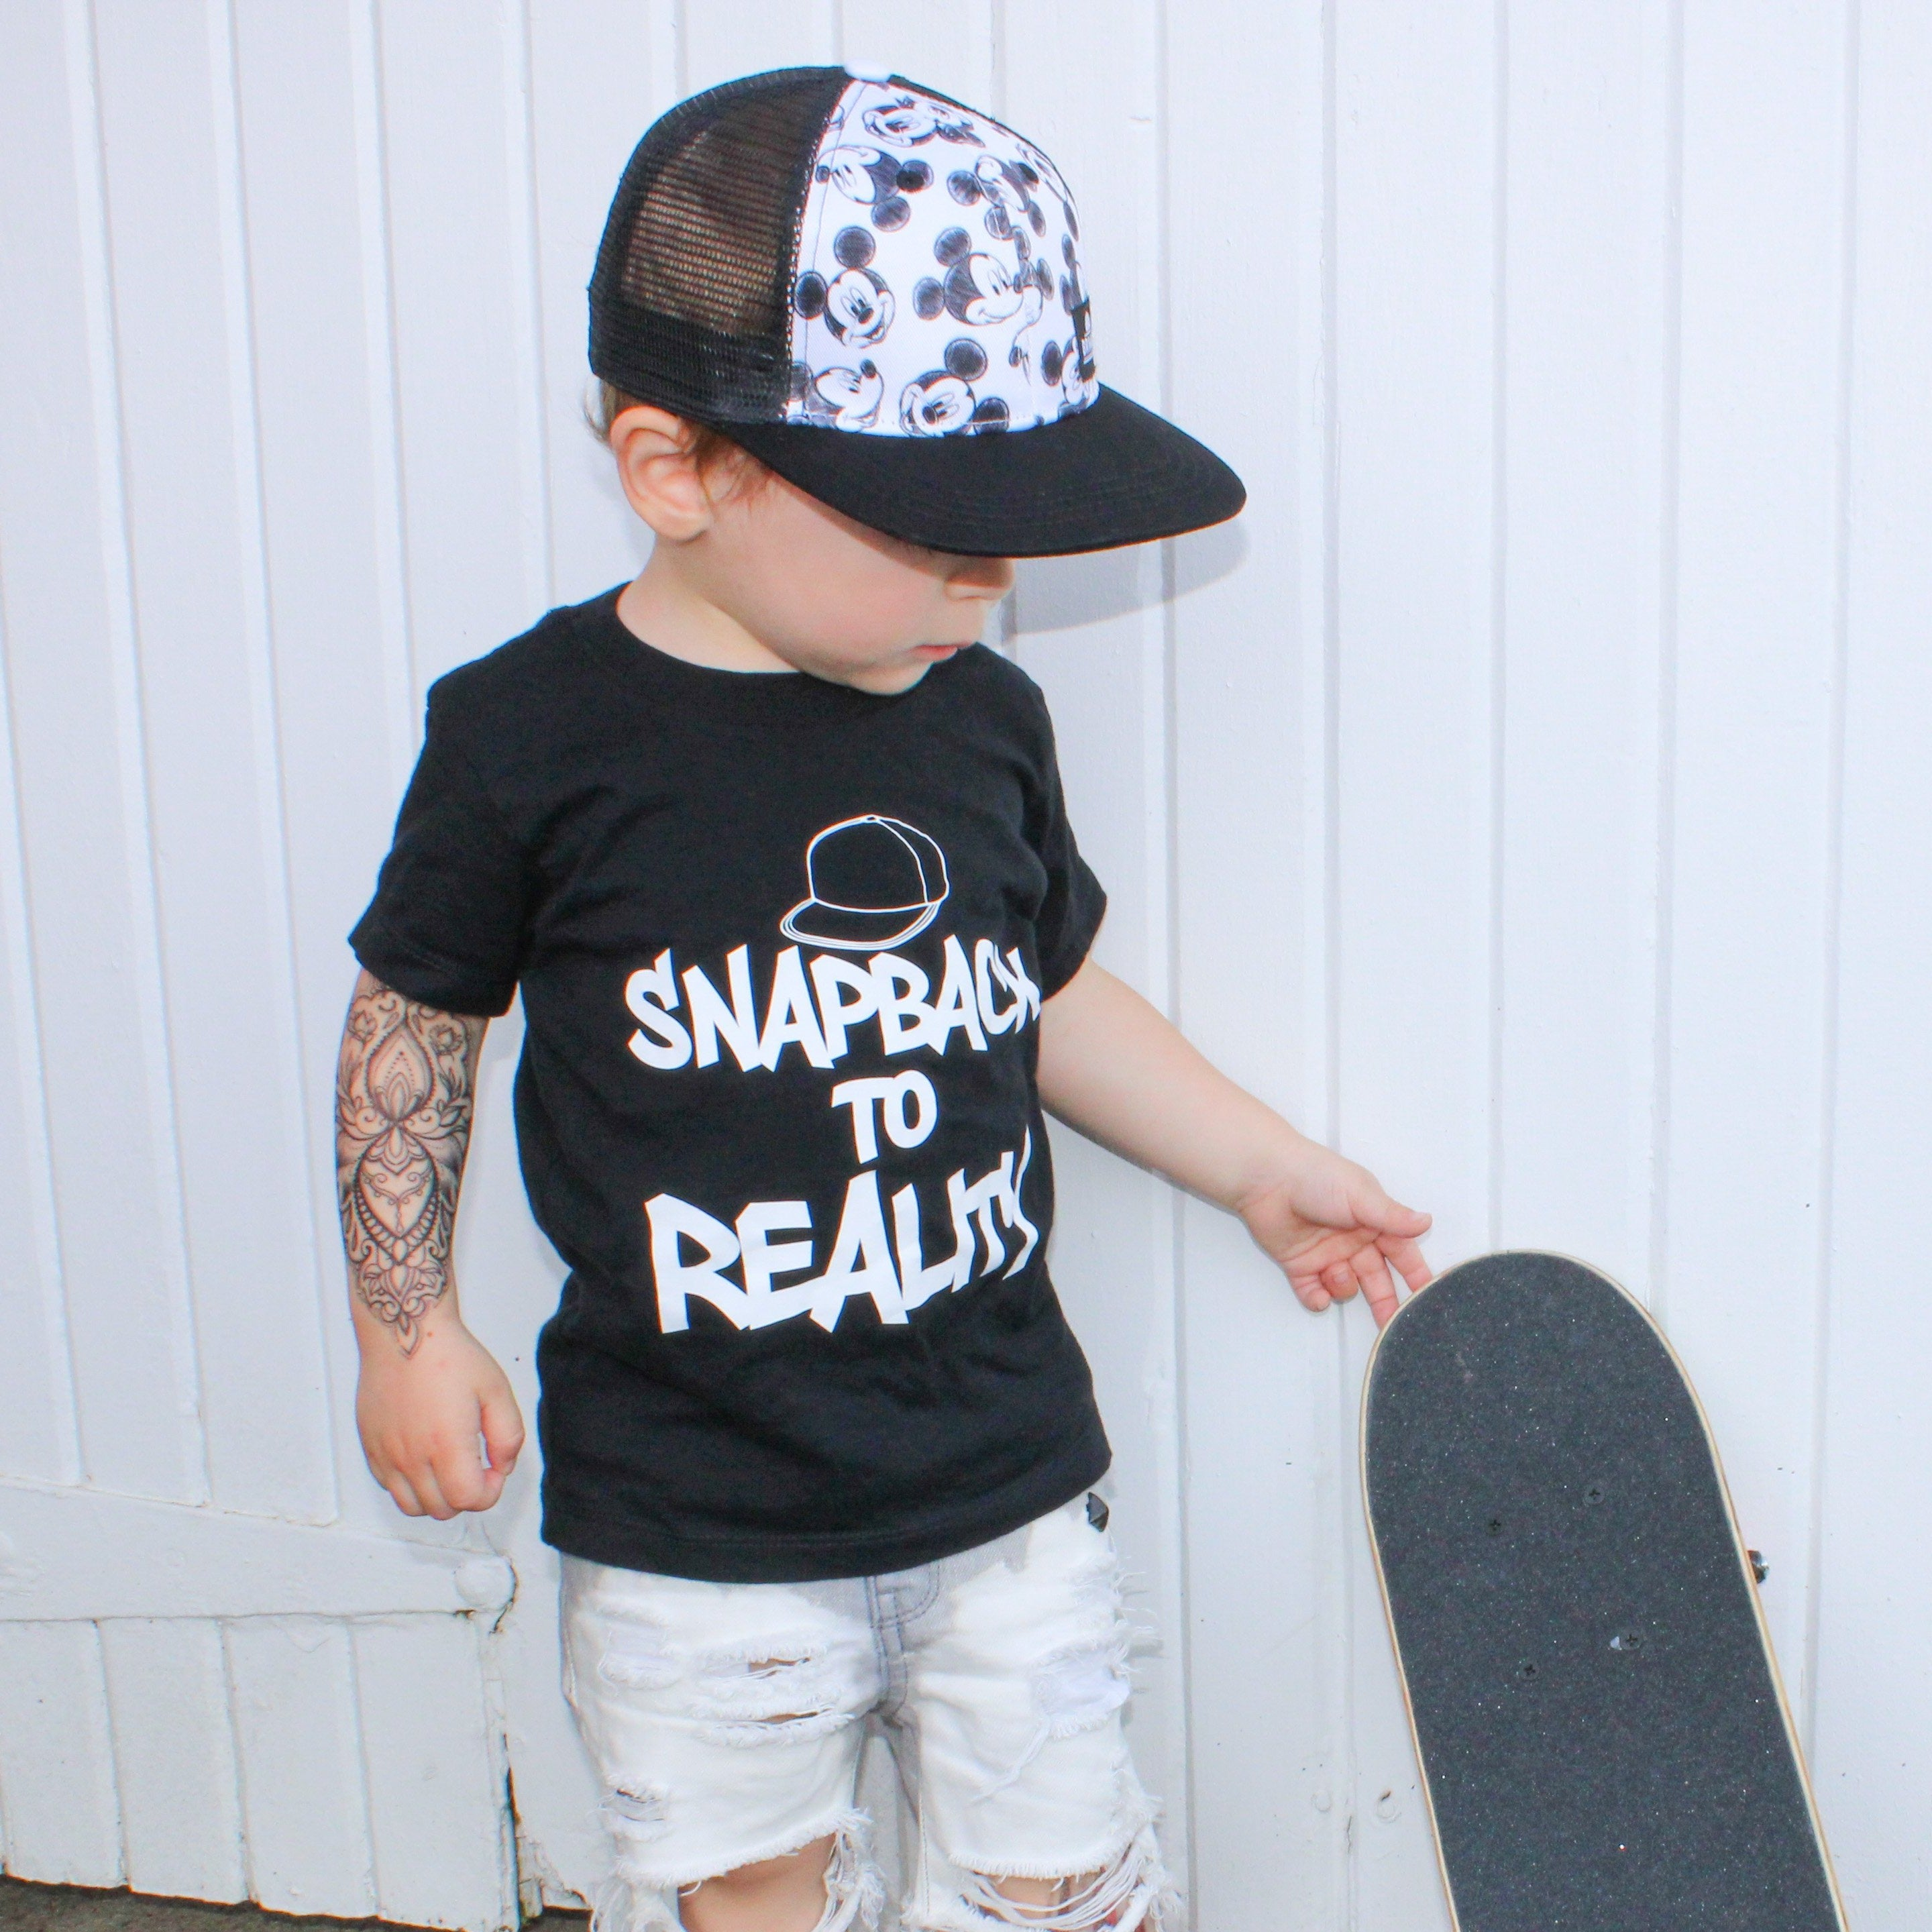 Toddler Boys Snapback to Reality Graphic Black Short Sleeve T-Shirt